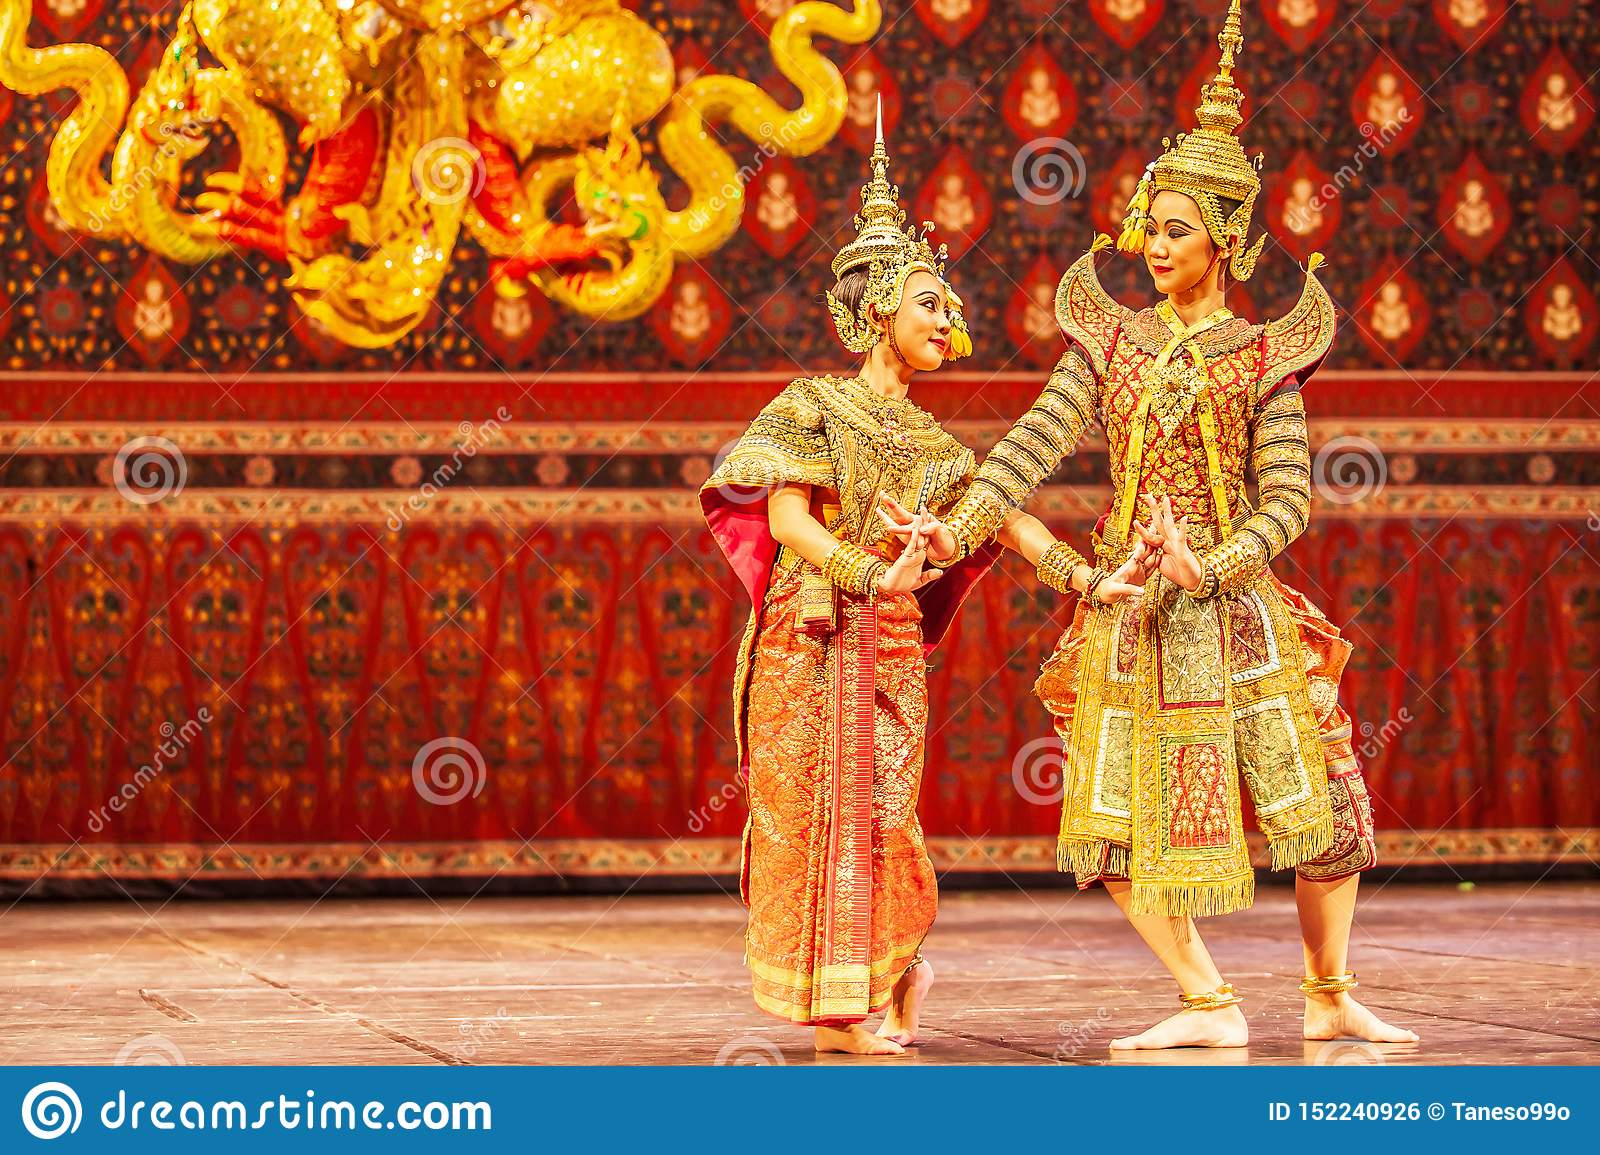 Khon performance, the romance scenes between Phra Ram and Nang Sida in the Ramayana epic